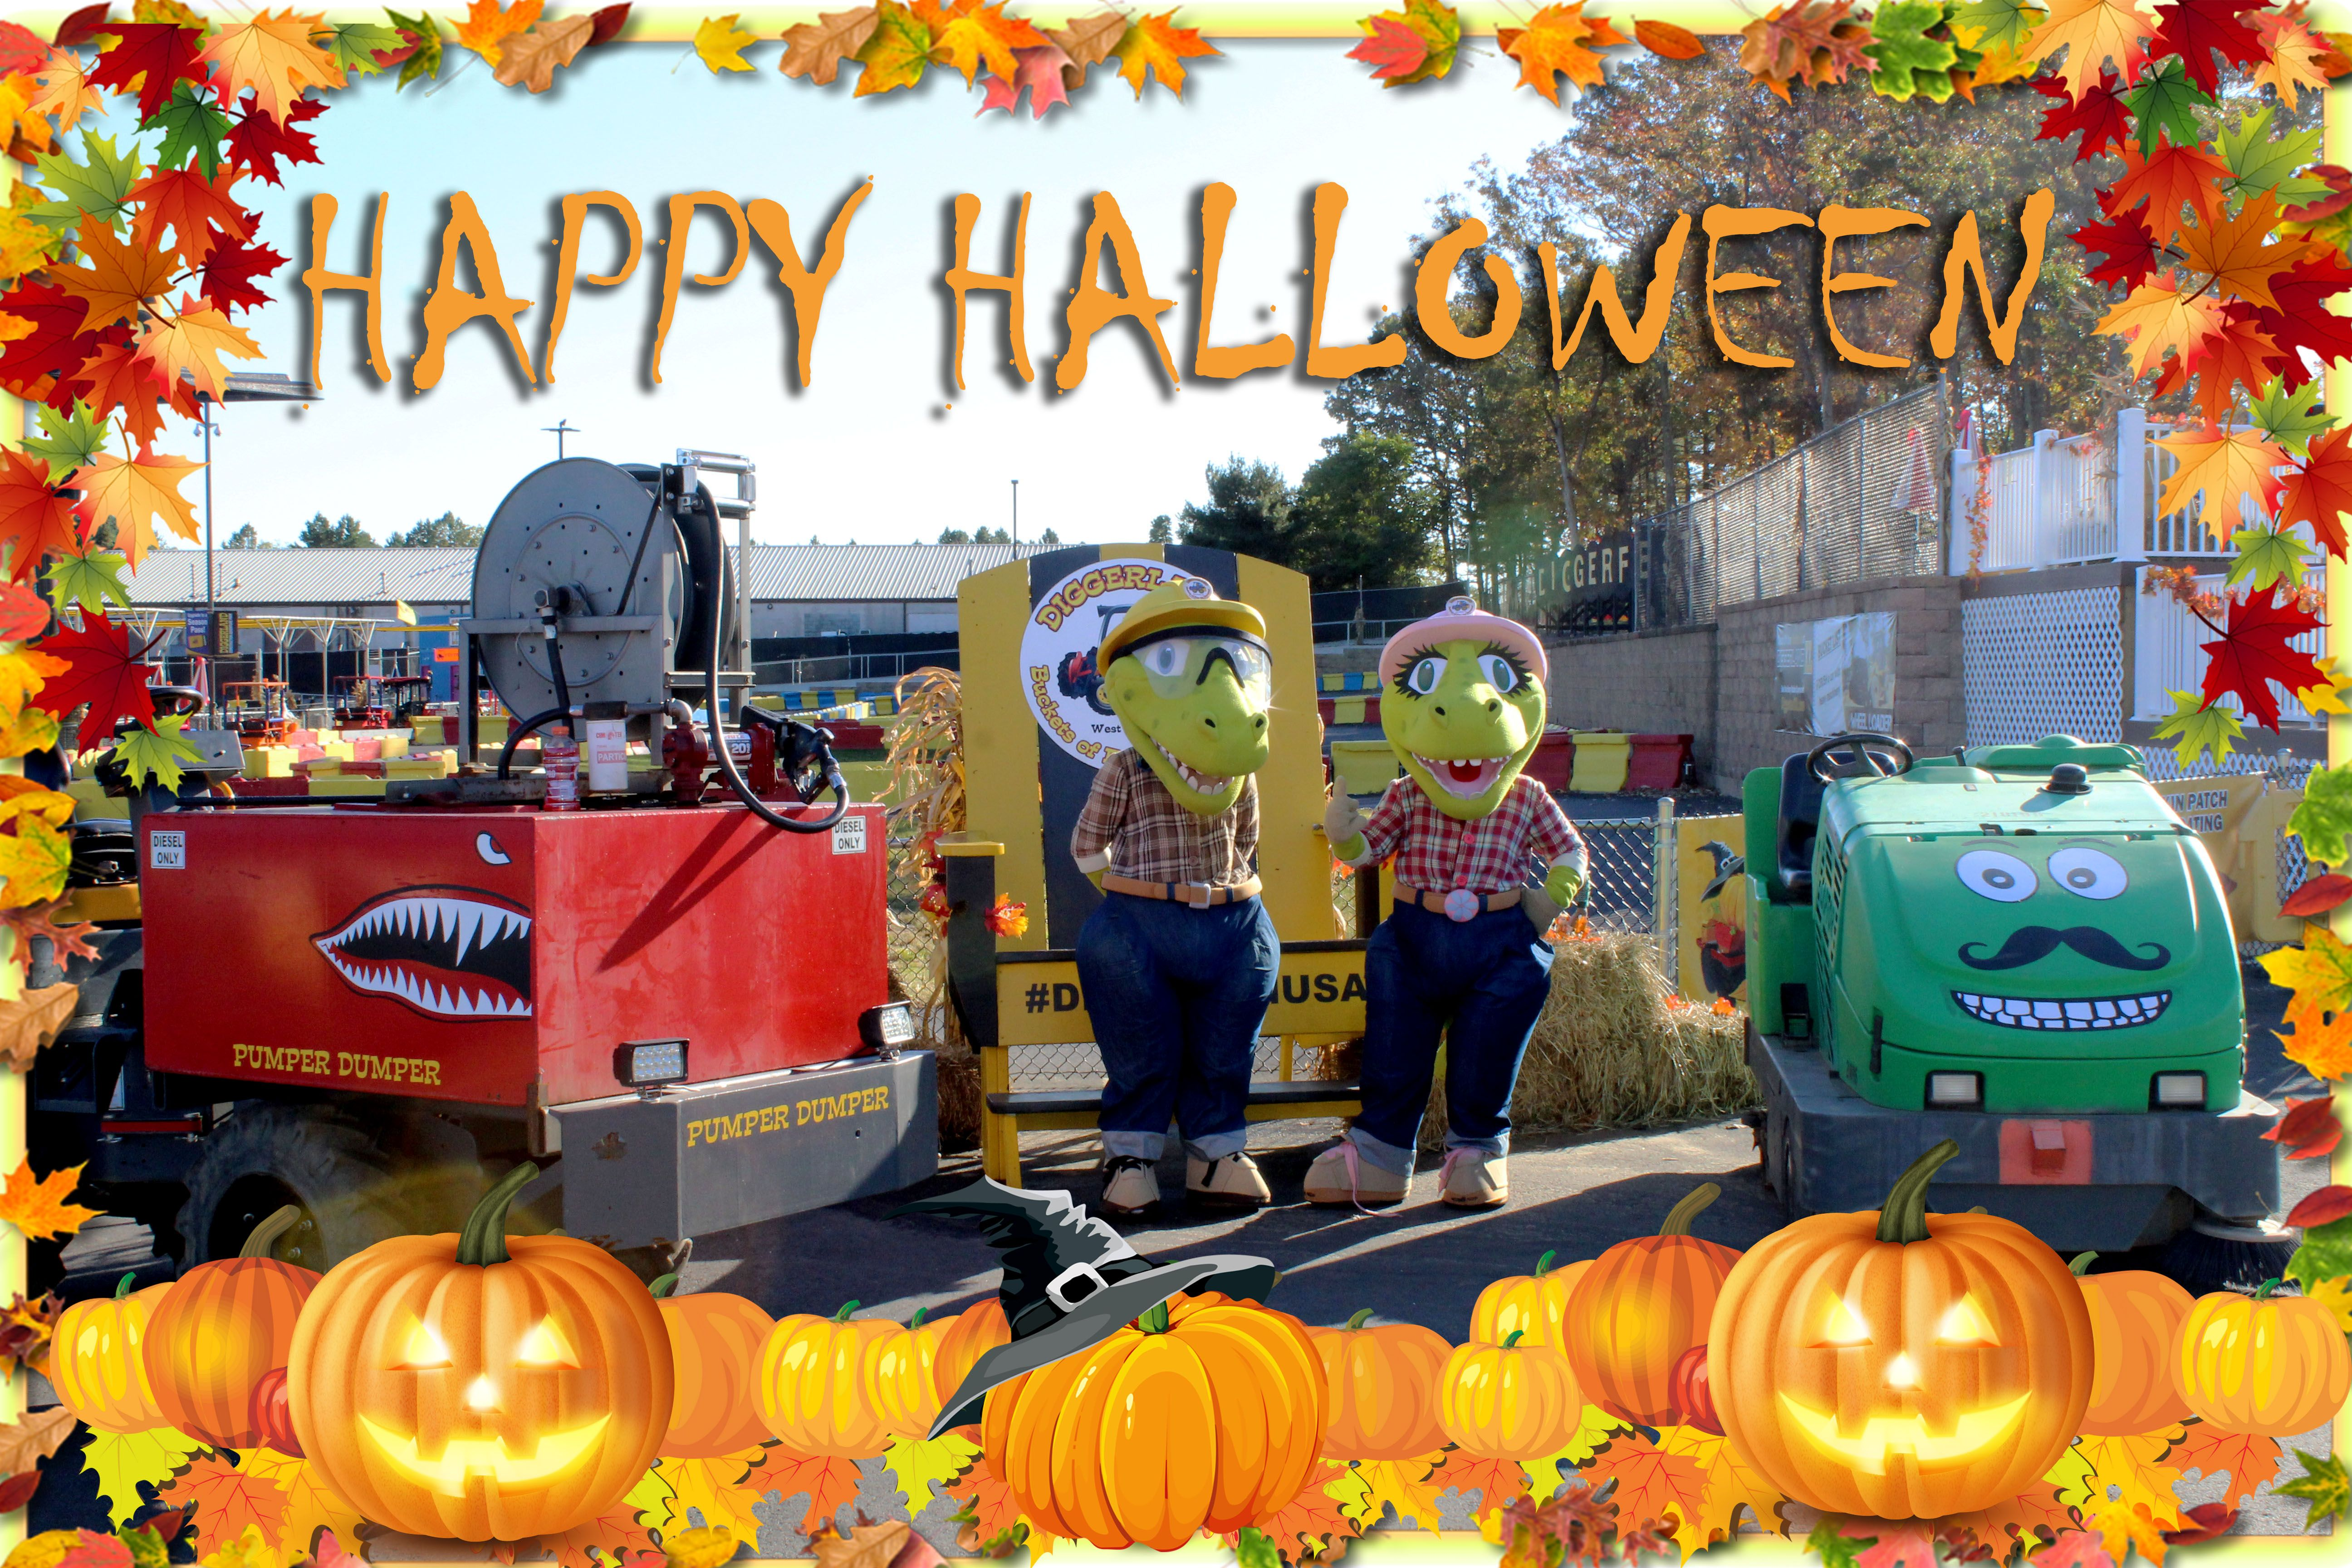 Happy Halloween from DRex, Daisy, Sammy the Sweeper, the